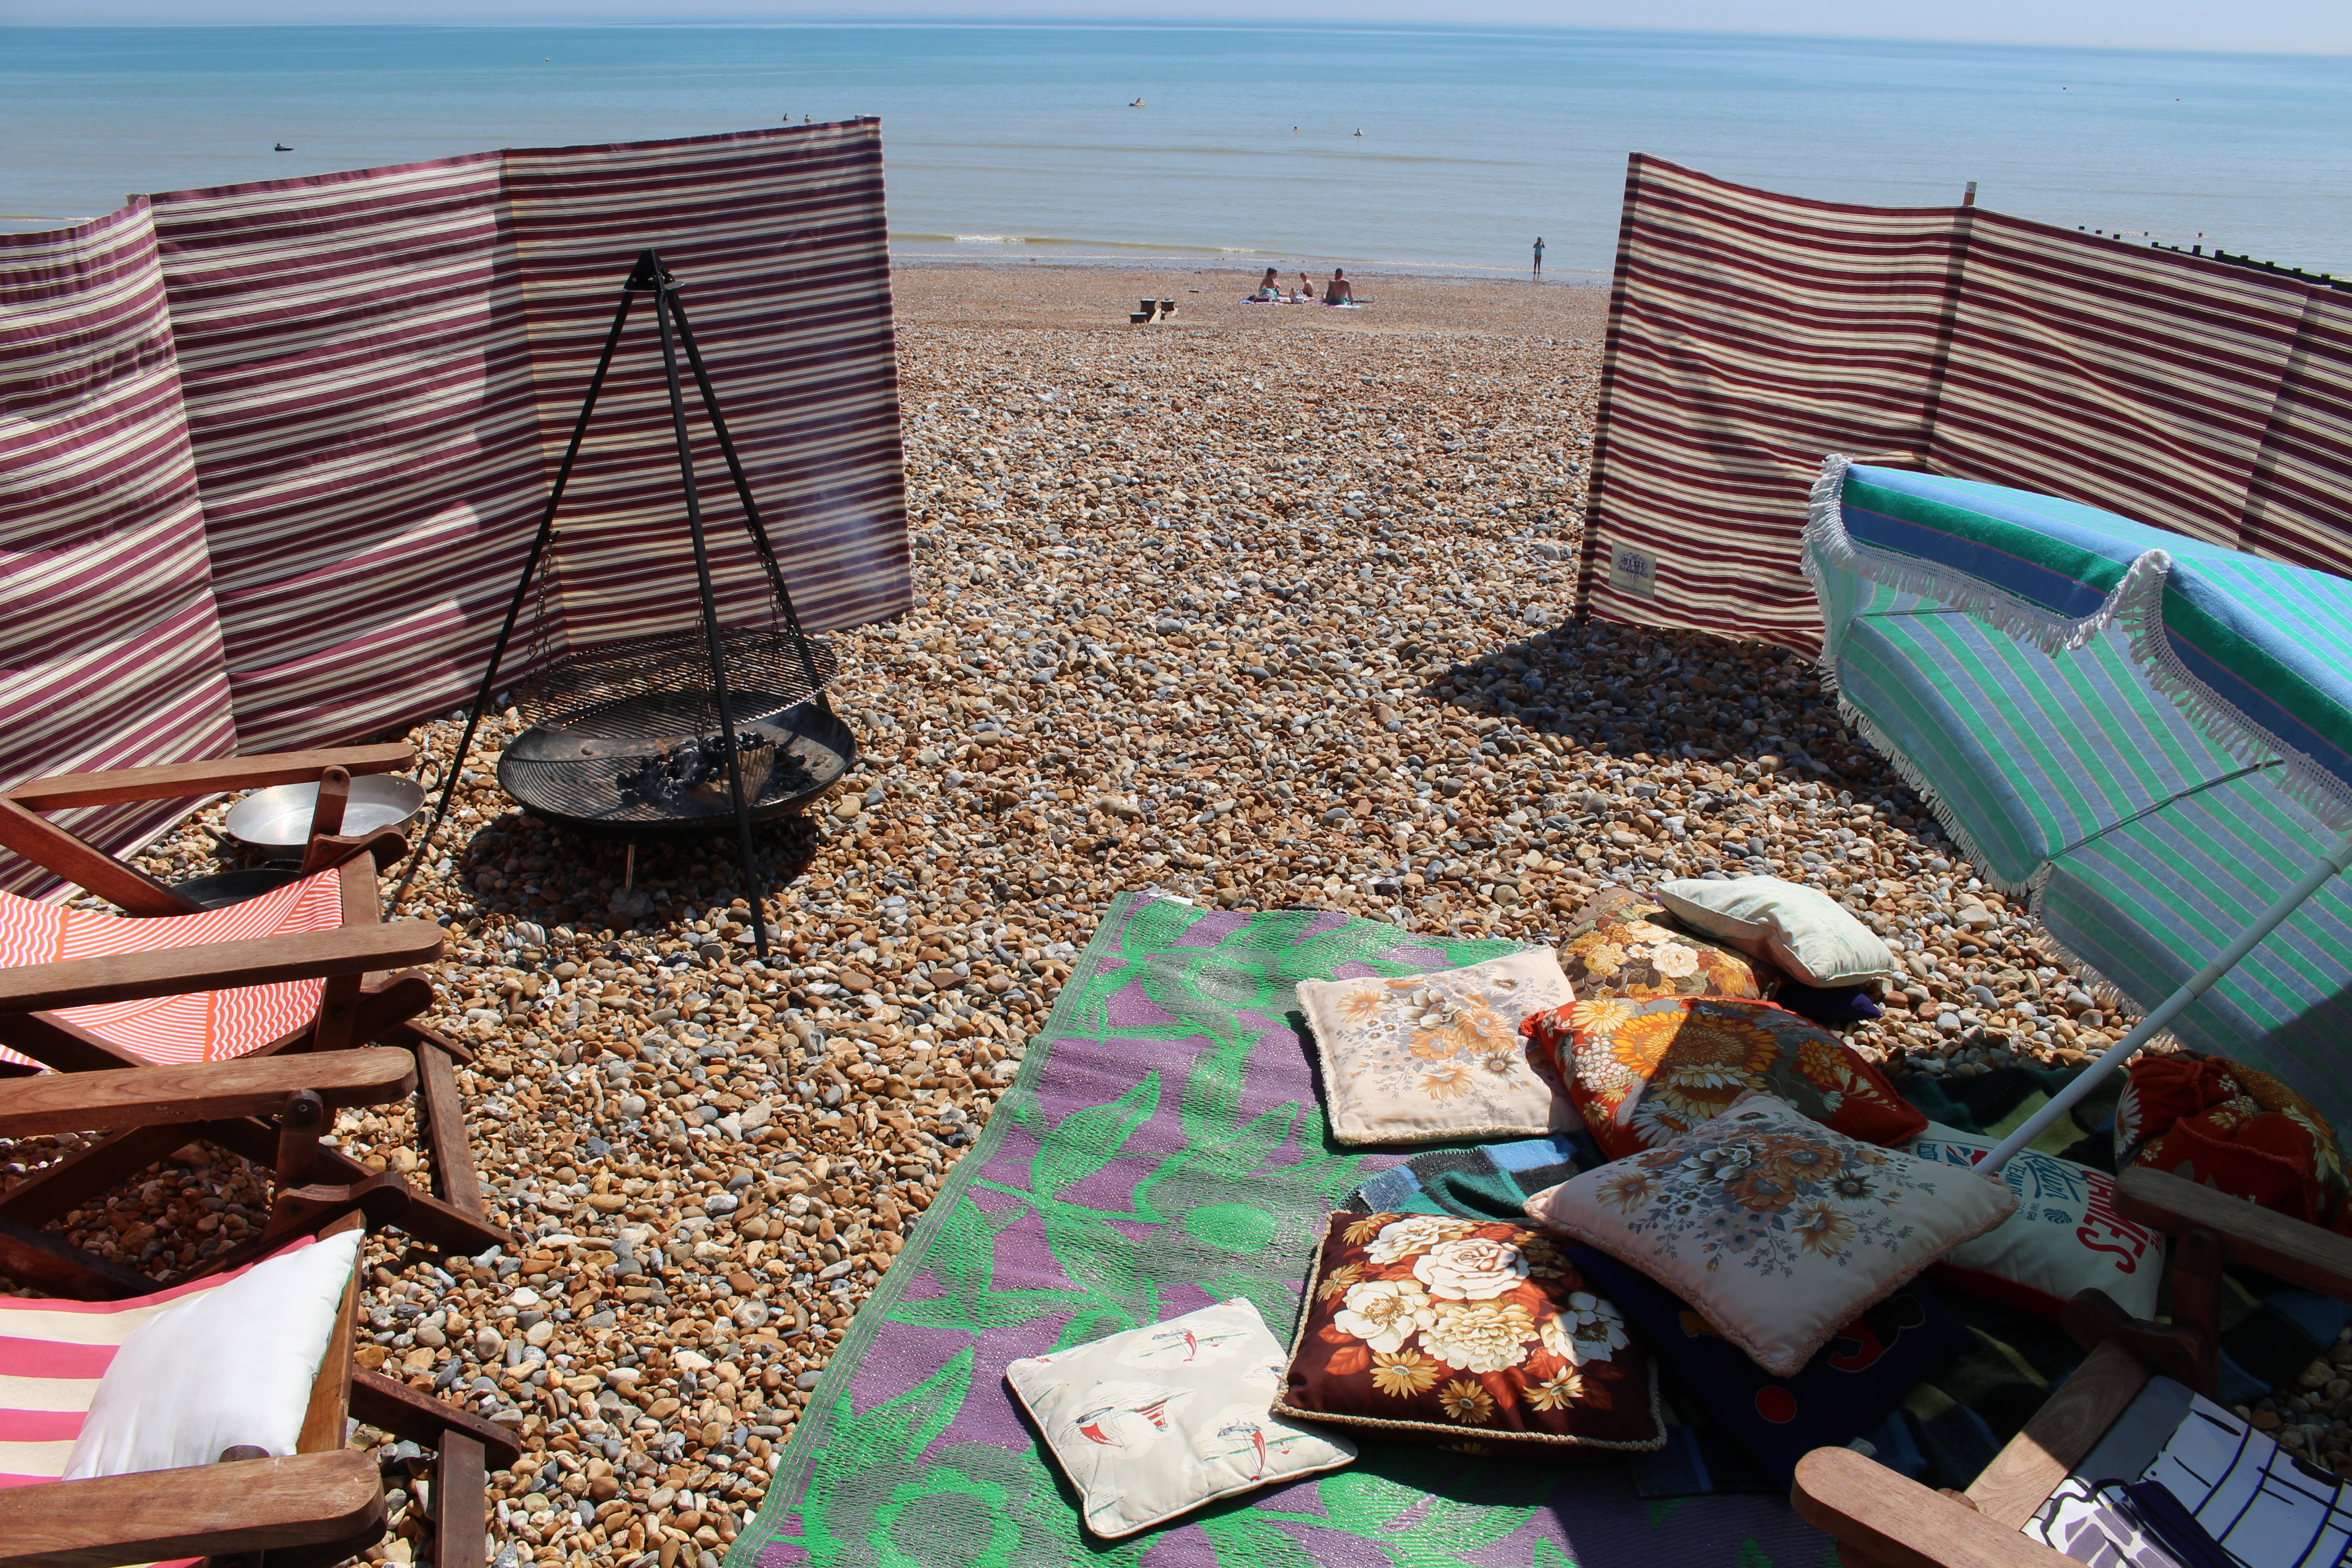 Beach Hut Set Up. Cooking on the beach with blanket and cushions to relax on while dinner cooks